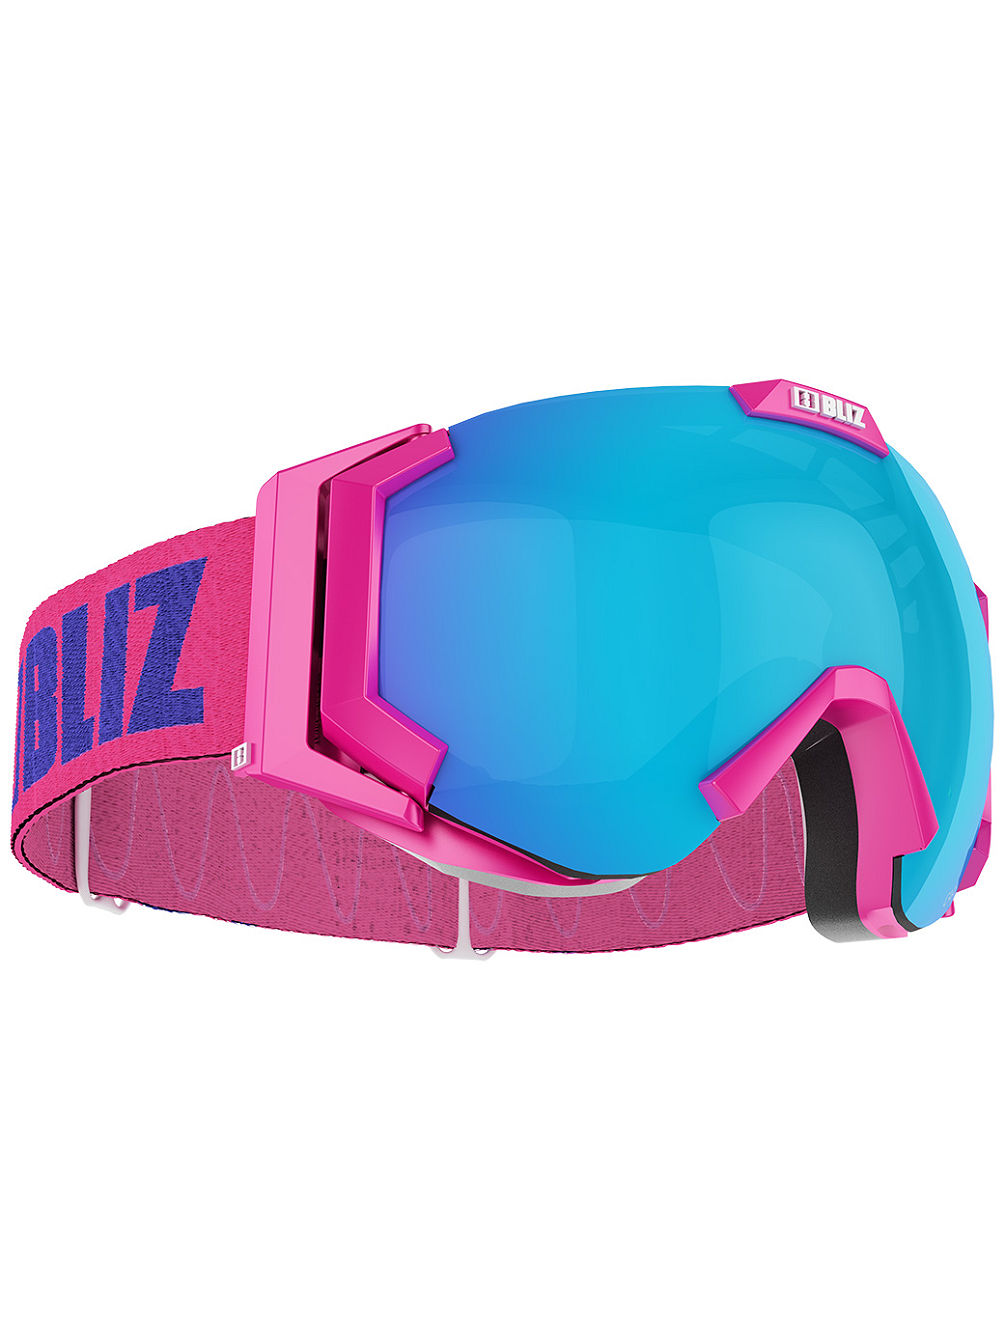 bliz-protective-sports-gear-carver-smallface-pink